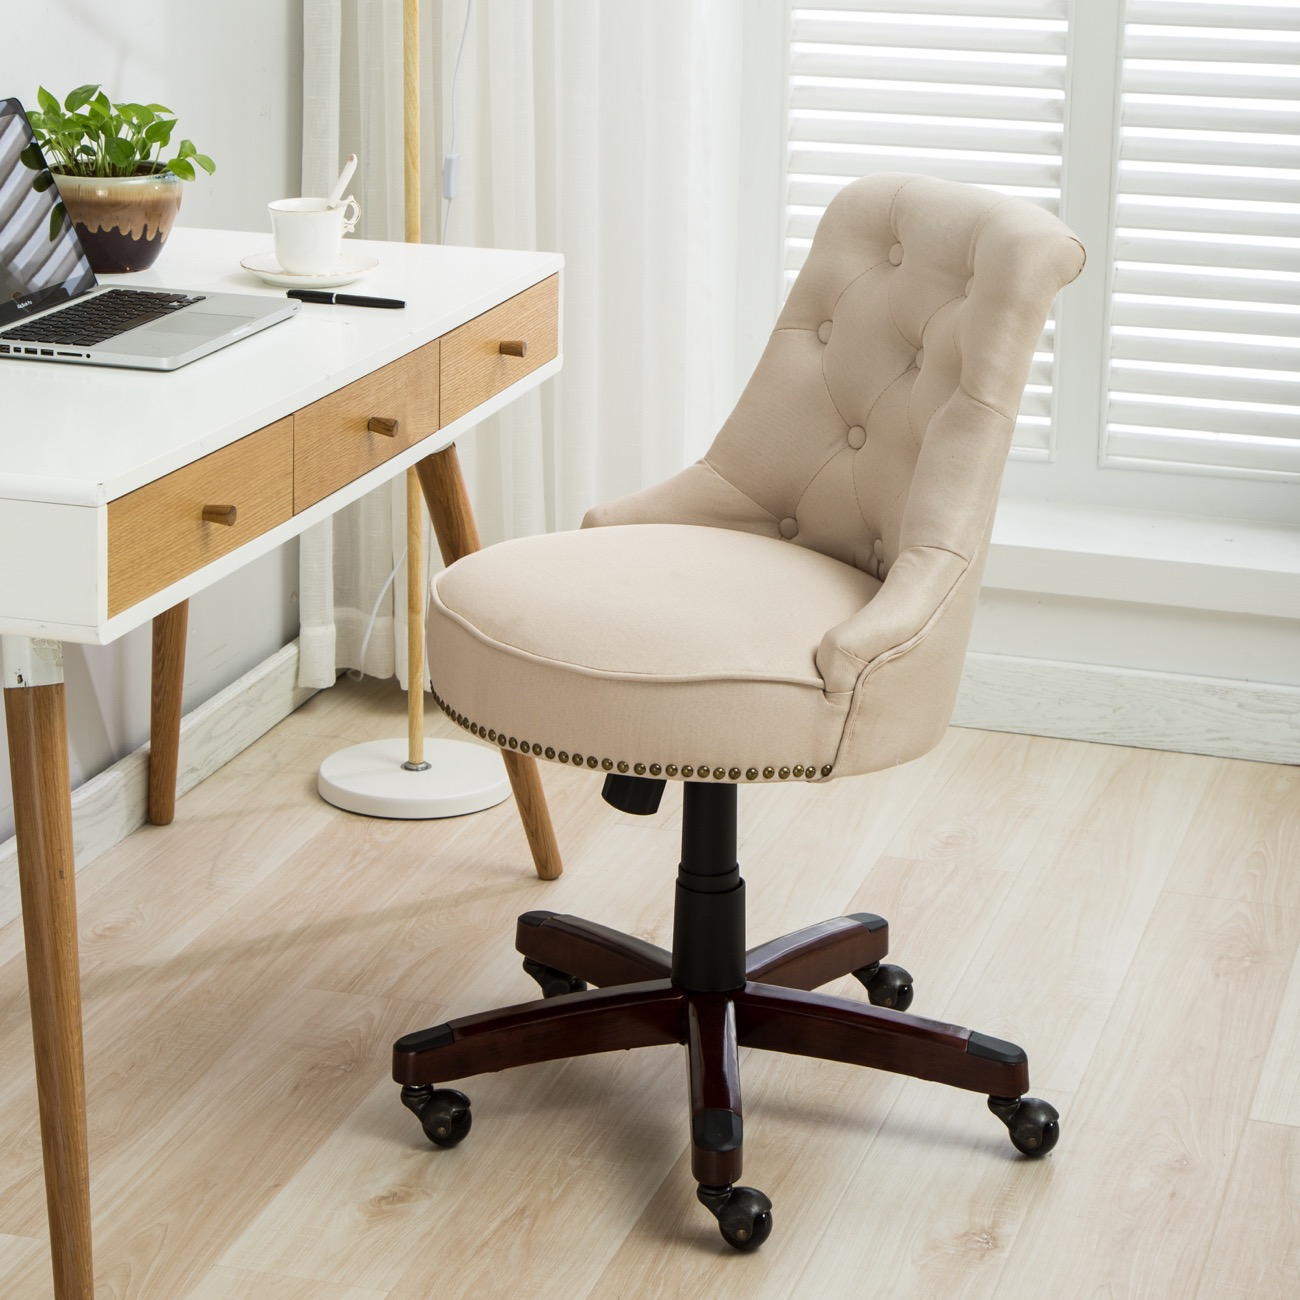 Linen Office Chair Details About Beige Home Office Chair Tufted Linen Height Adjustble Tilt Swivel